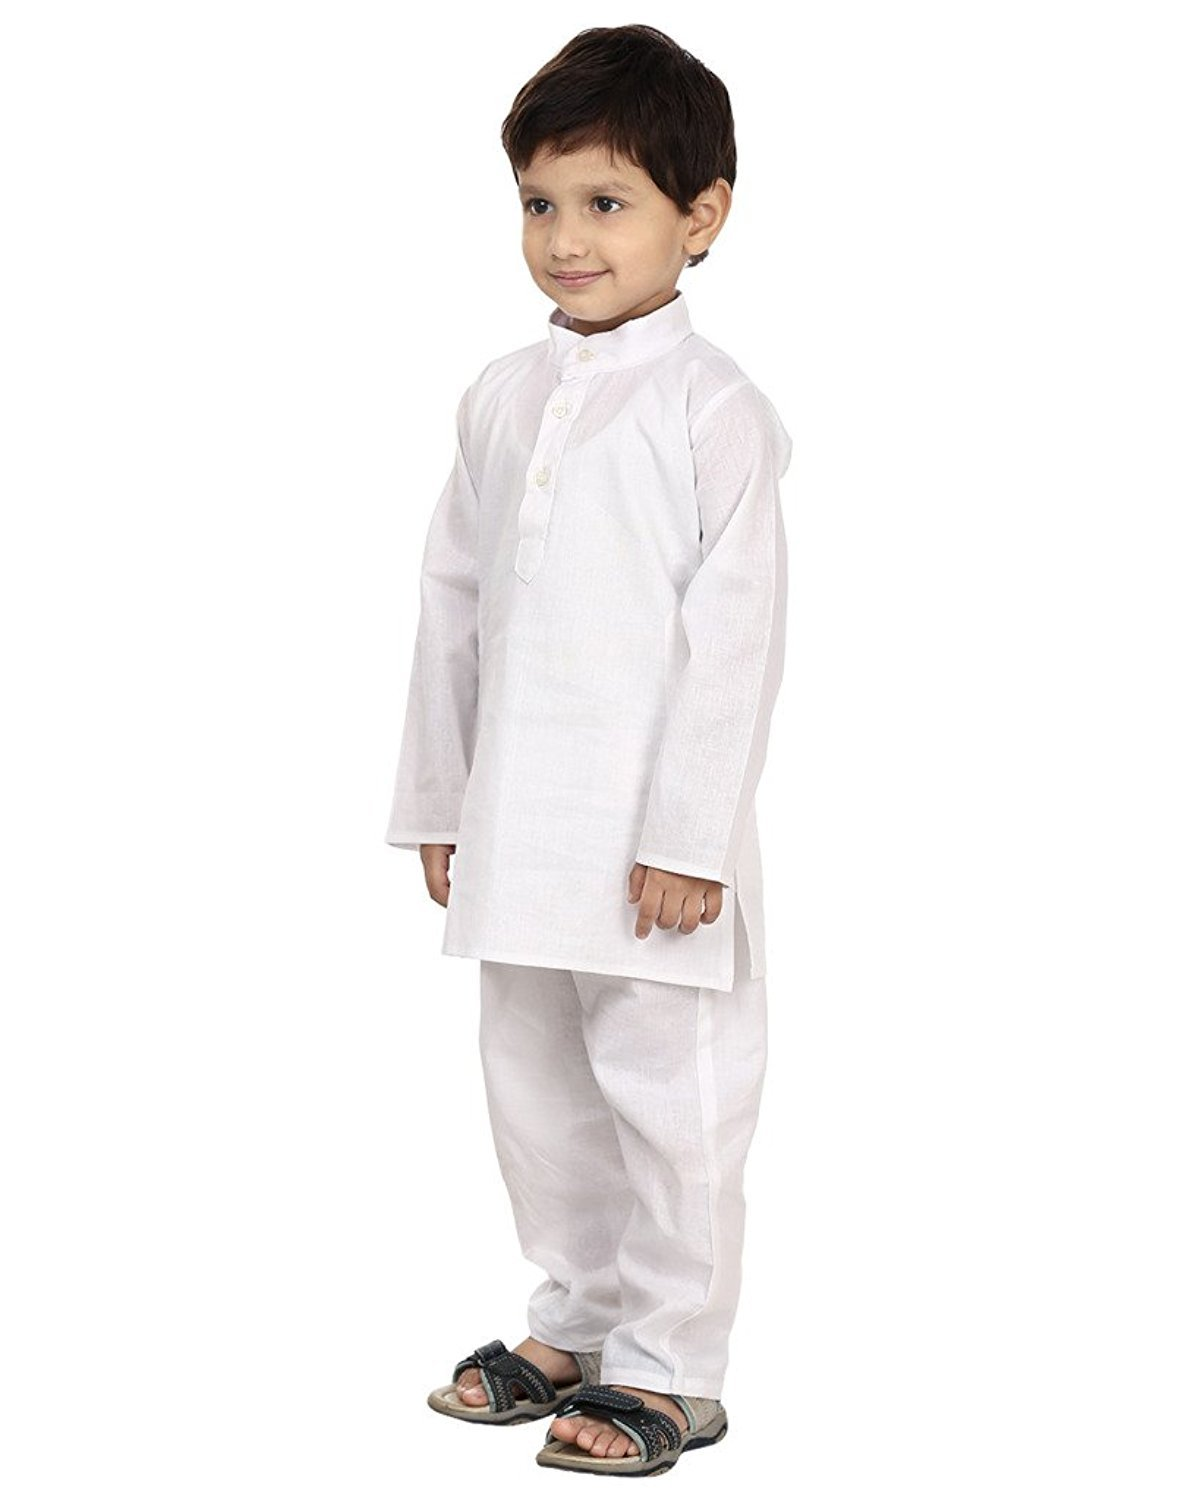 FOCIL Festival Season Special White Cotton Kurta & Pyjama Pant Set for Kids by FOCIL (Image #2)